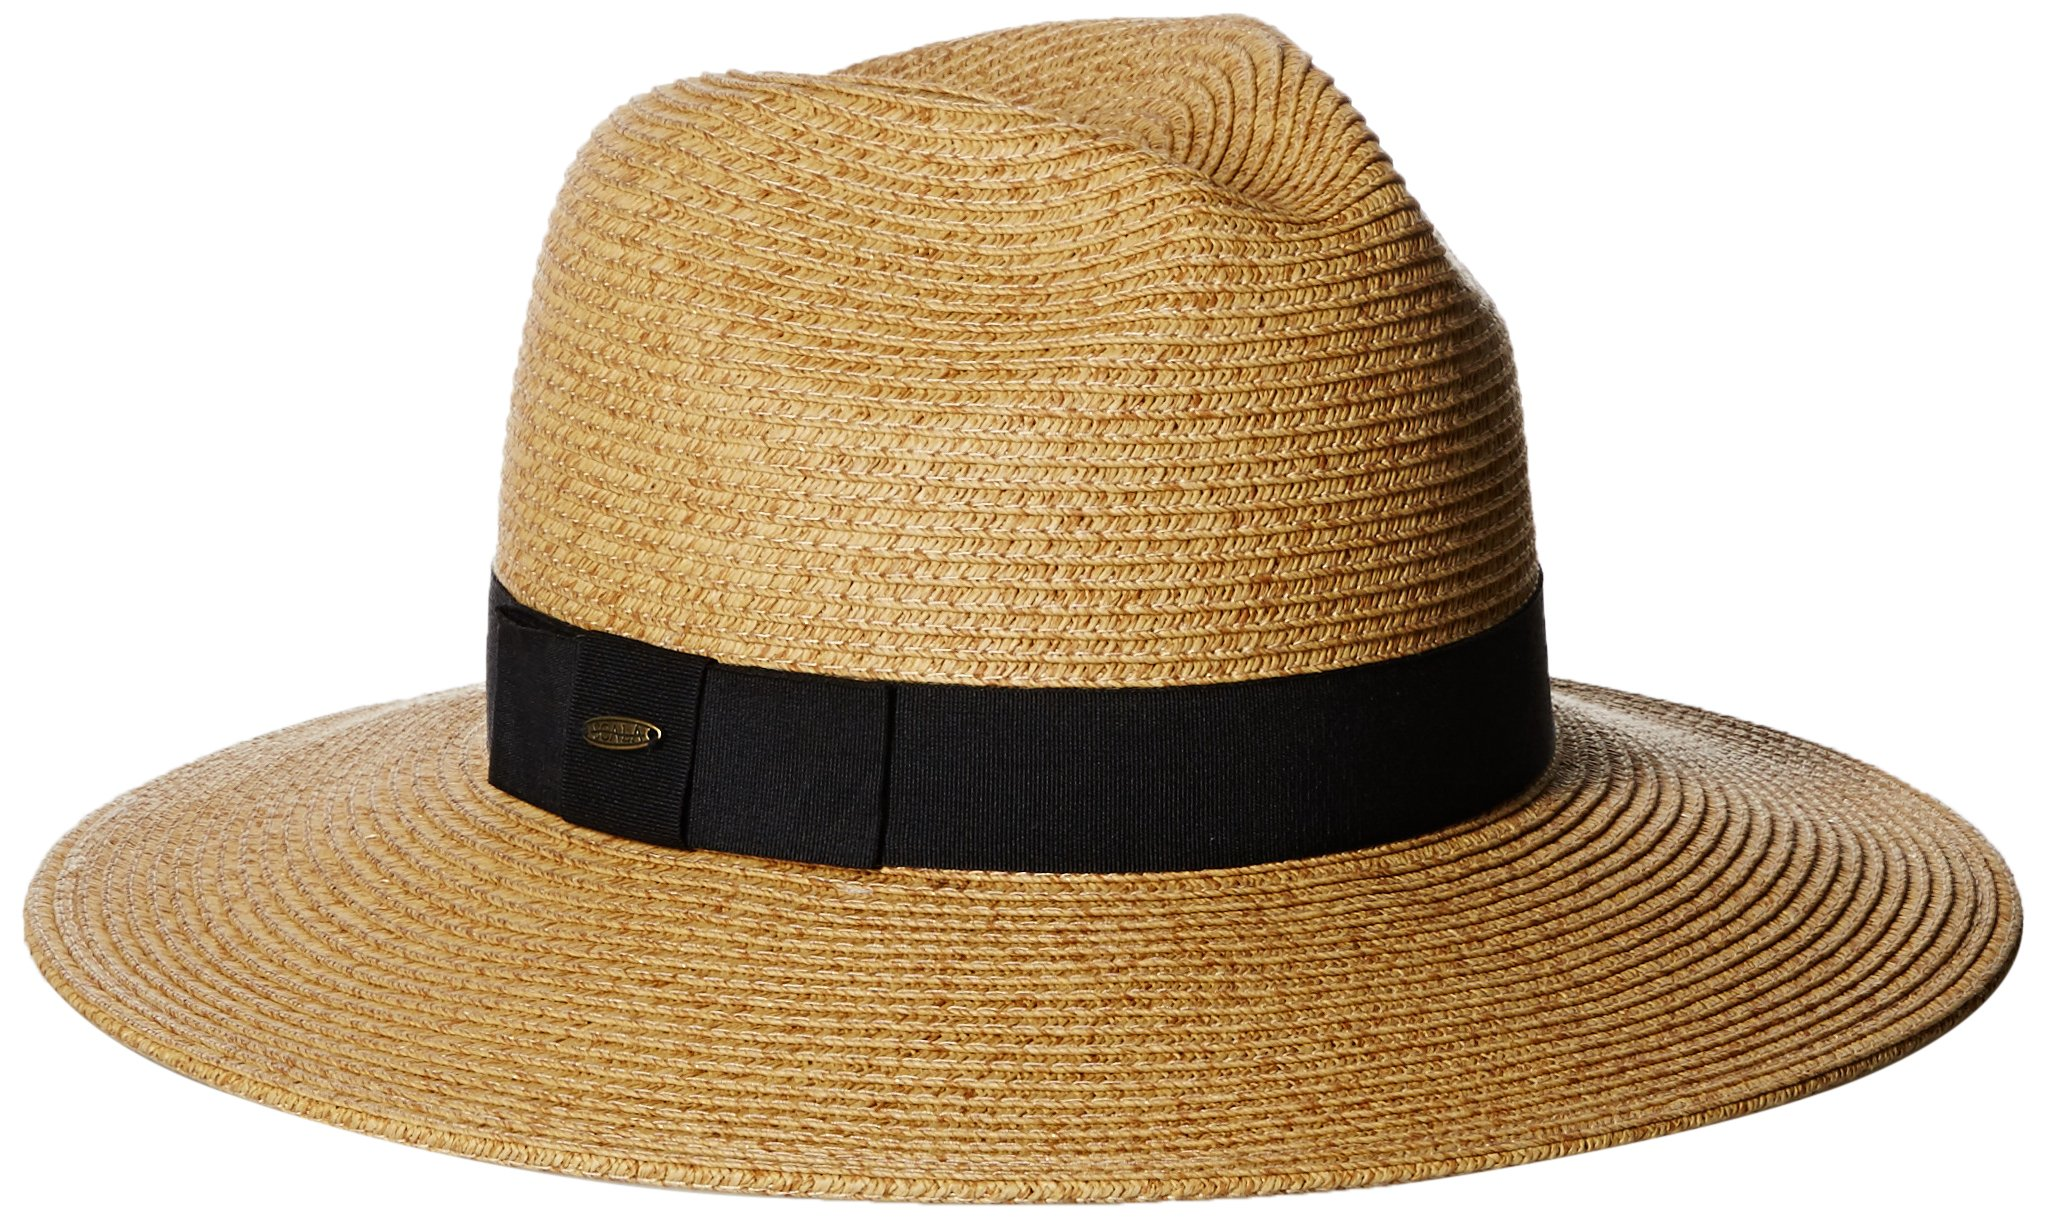 SCALA Women's Paper Braid Fedora Hat with Ribbon, Toast, One Size